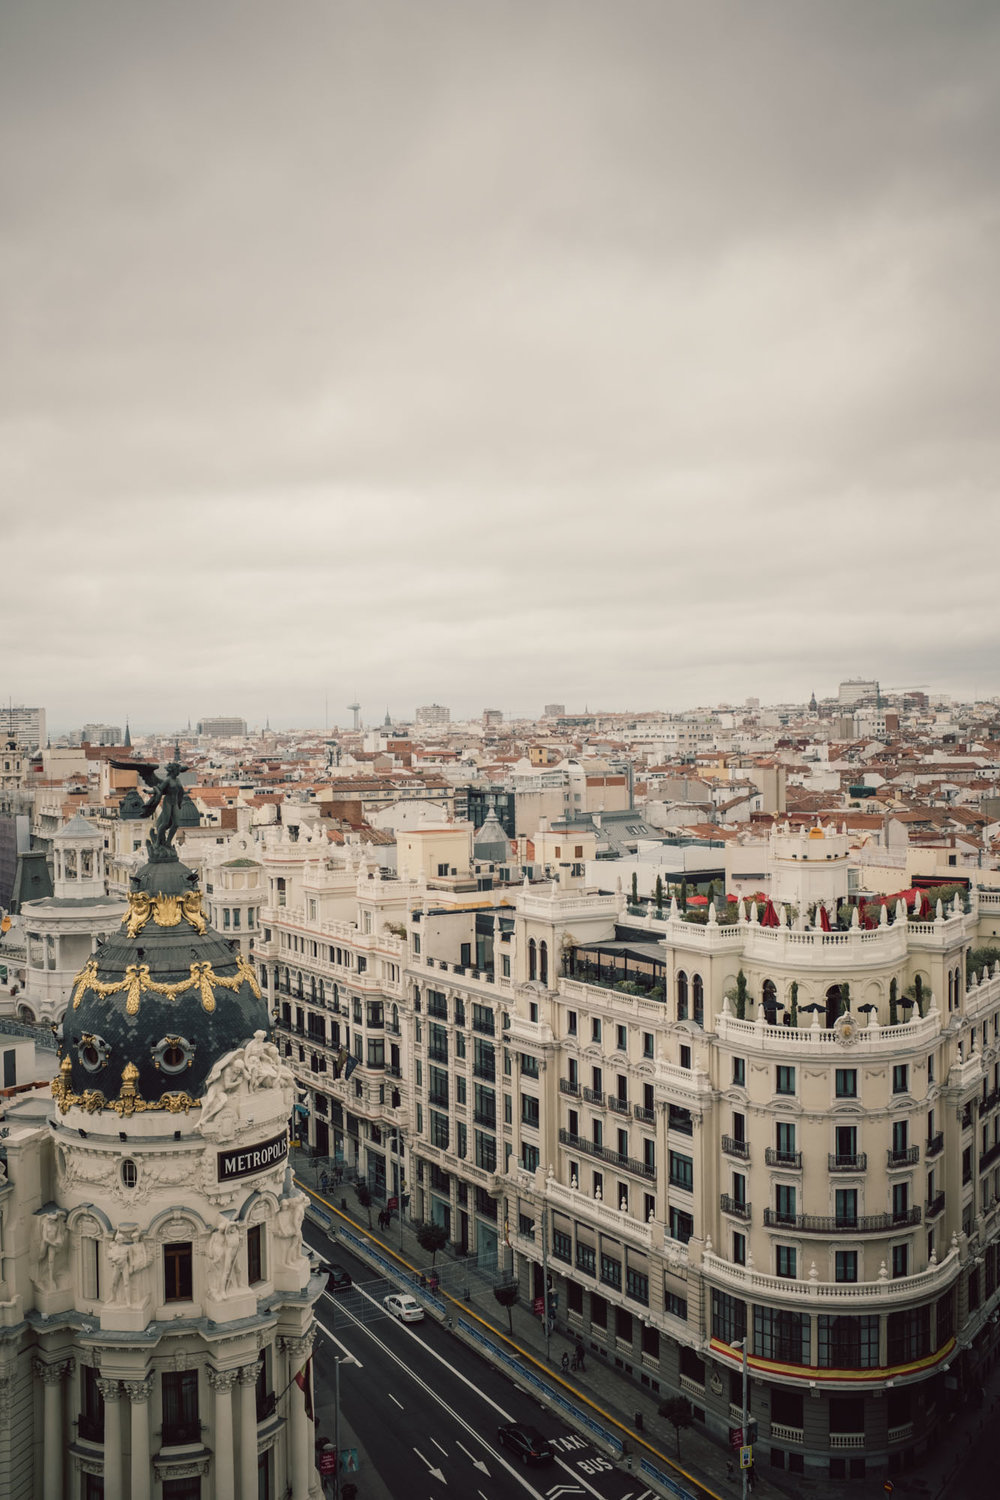 Madrid-Auswahl-Website-3652-17-Copyrights-Anton-Ahrens.jpg